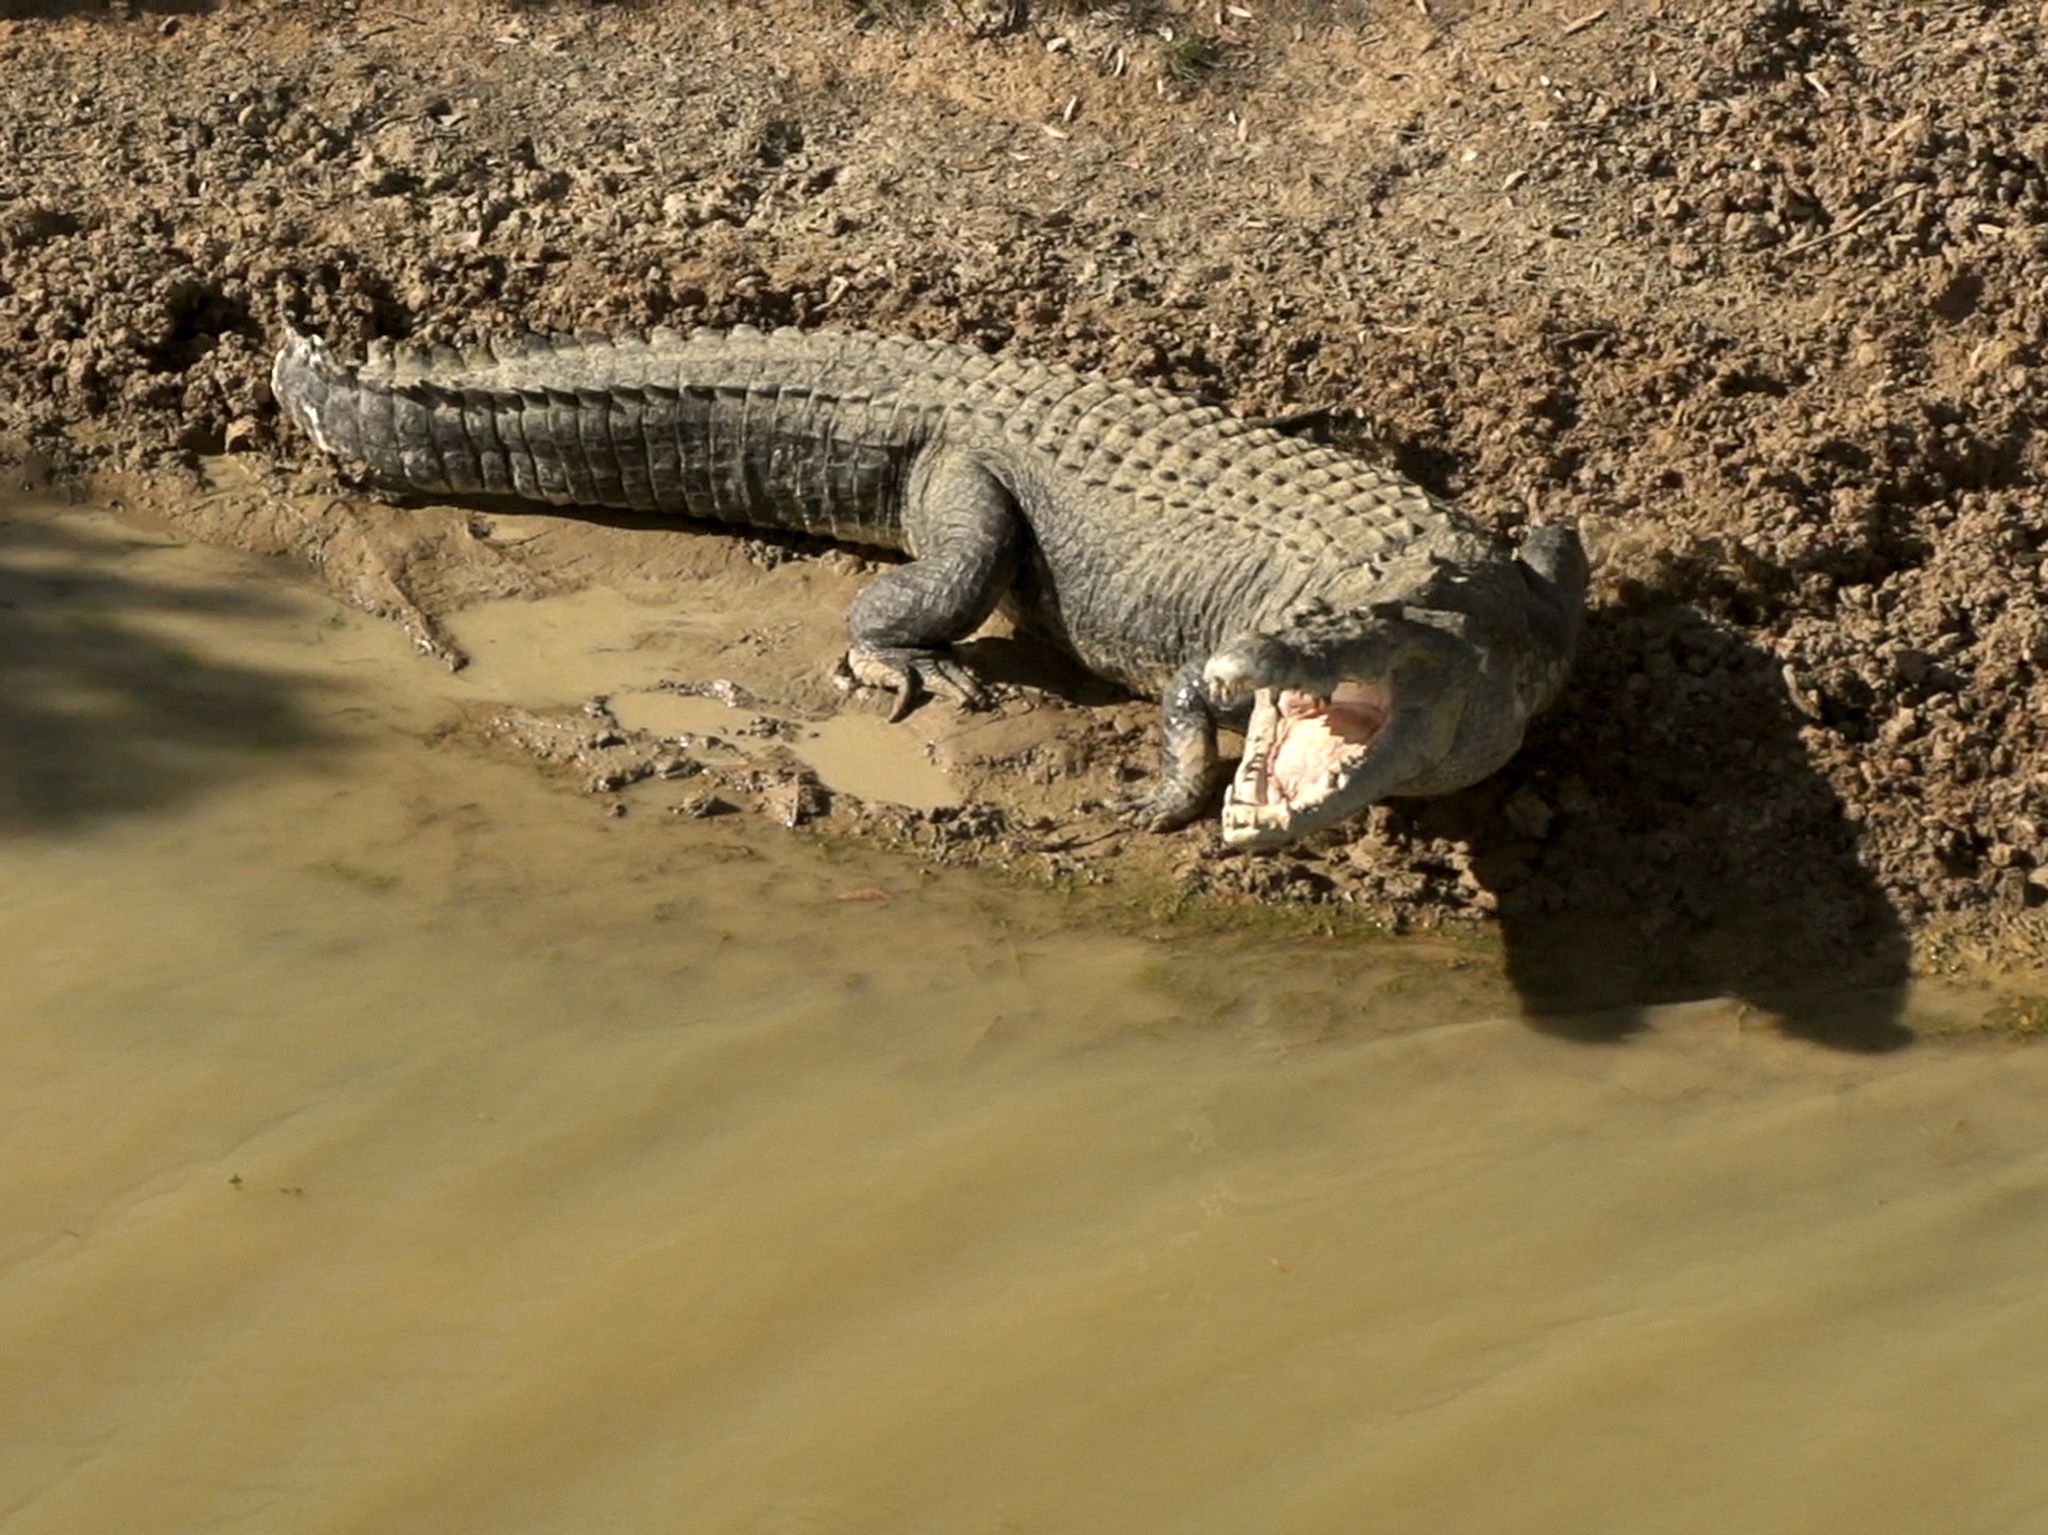 Northern Territory, Australia:  A croc shows its teeth. This image is from Monster Croc Wrangler. [Photo of the day - نوامبر 2019]